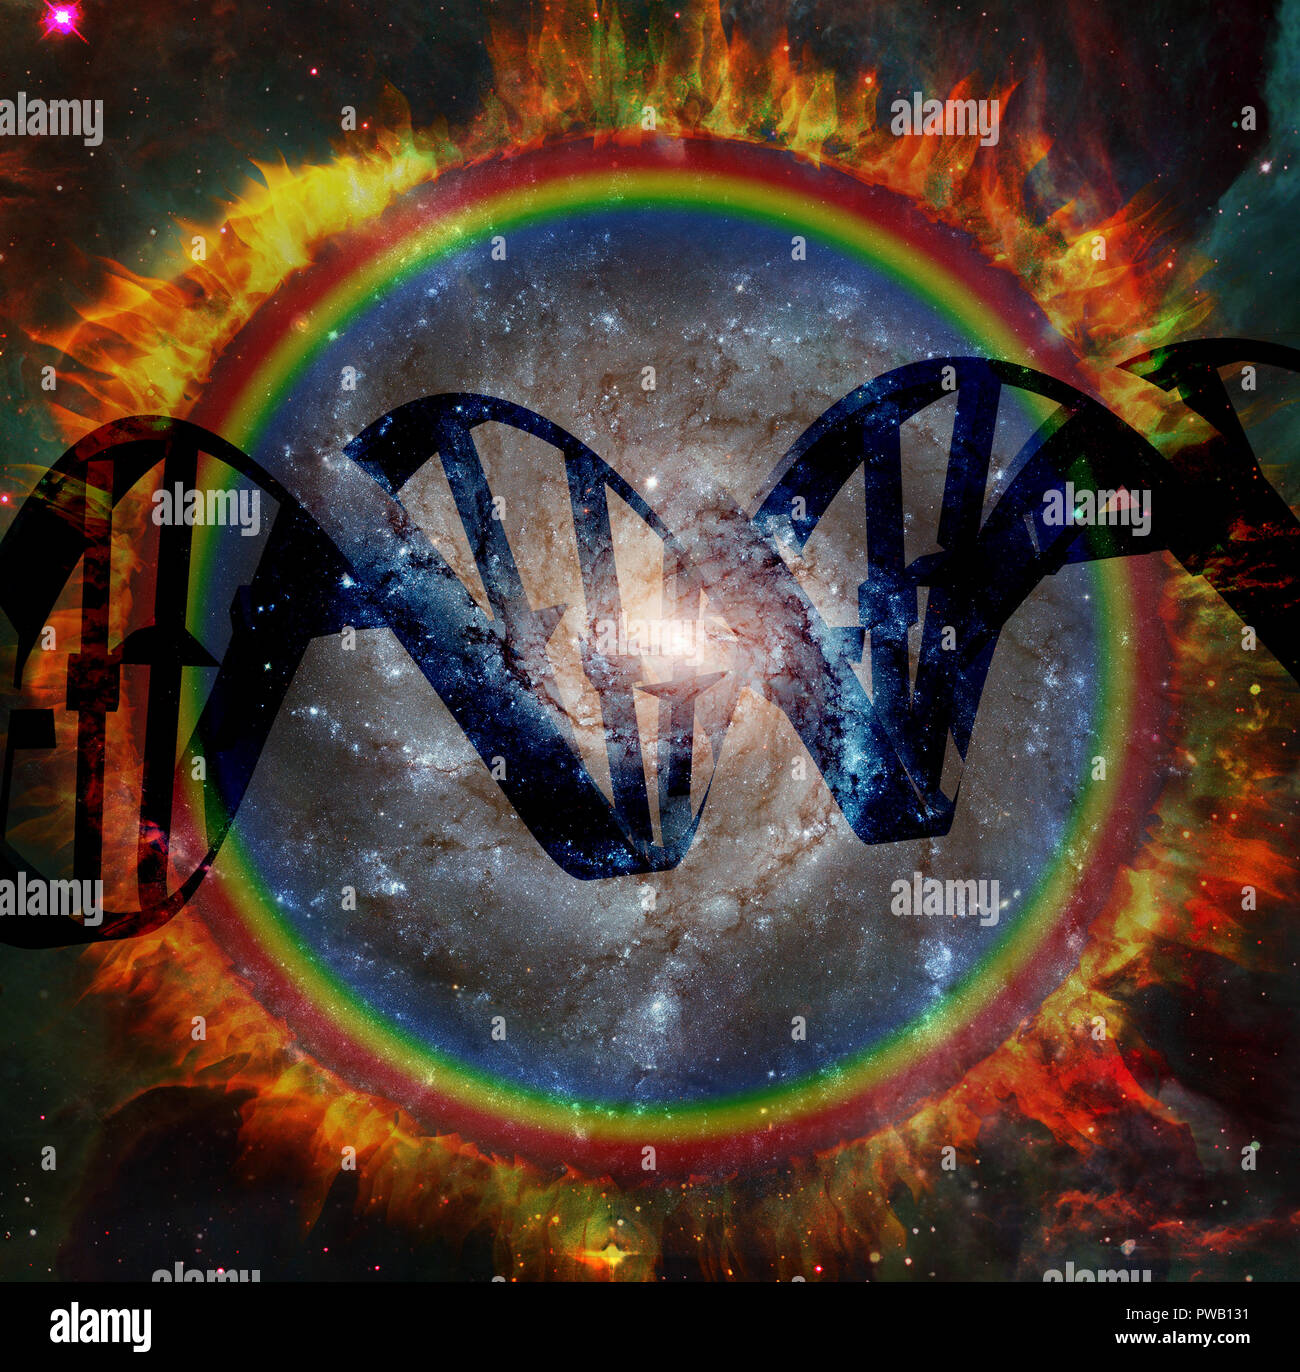 DNA strand - Origin of Life. Circle of Fire with Galaxy inside - Stock Image